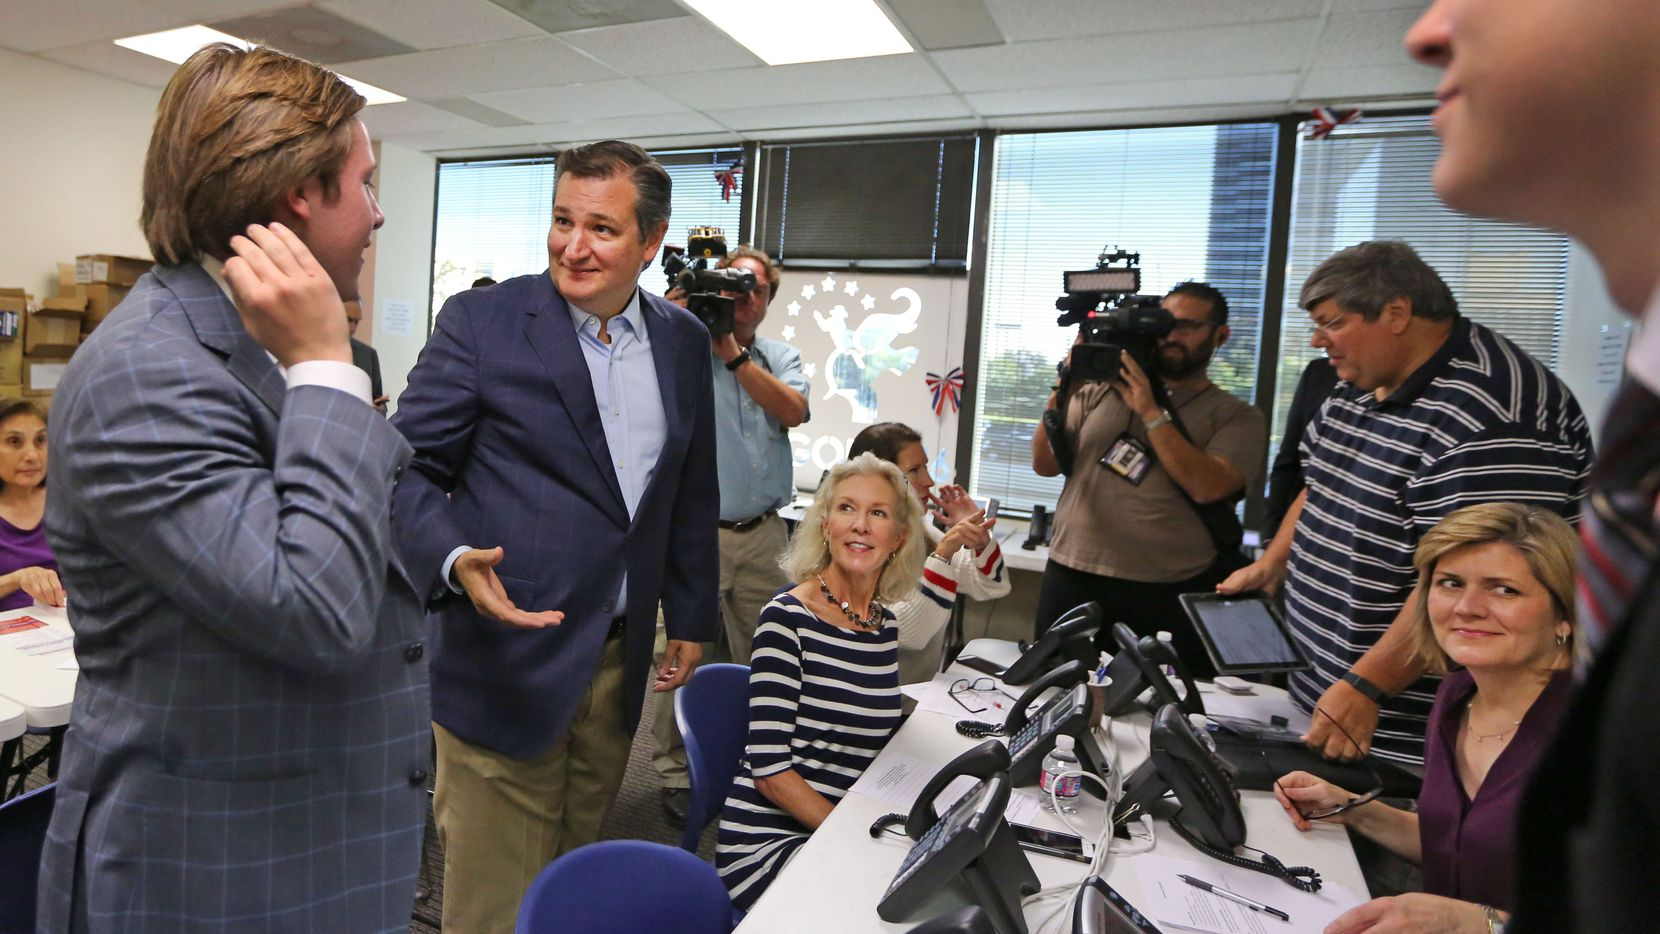 Sen. Ted Cruz stopped at Republican Party headquarters in Dallas on Thursday to encourage volunteers there working on getting the vote out.